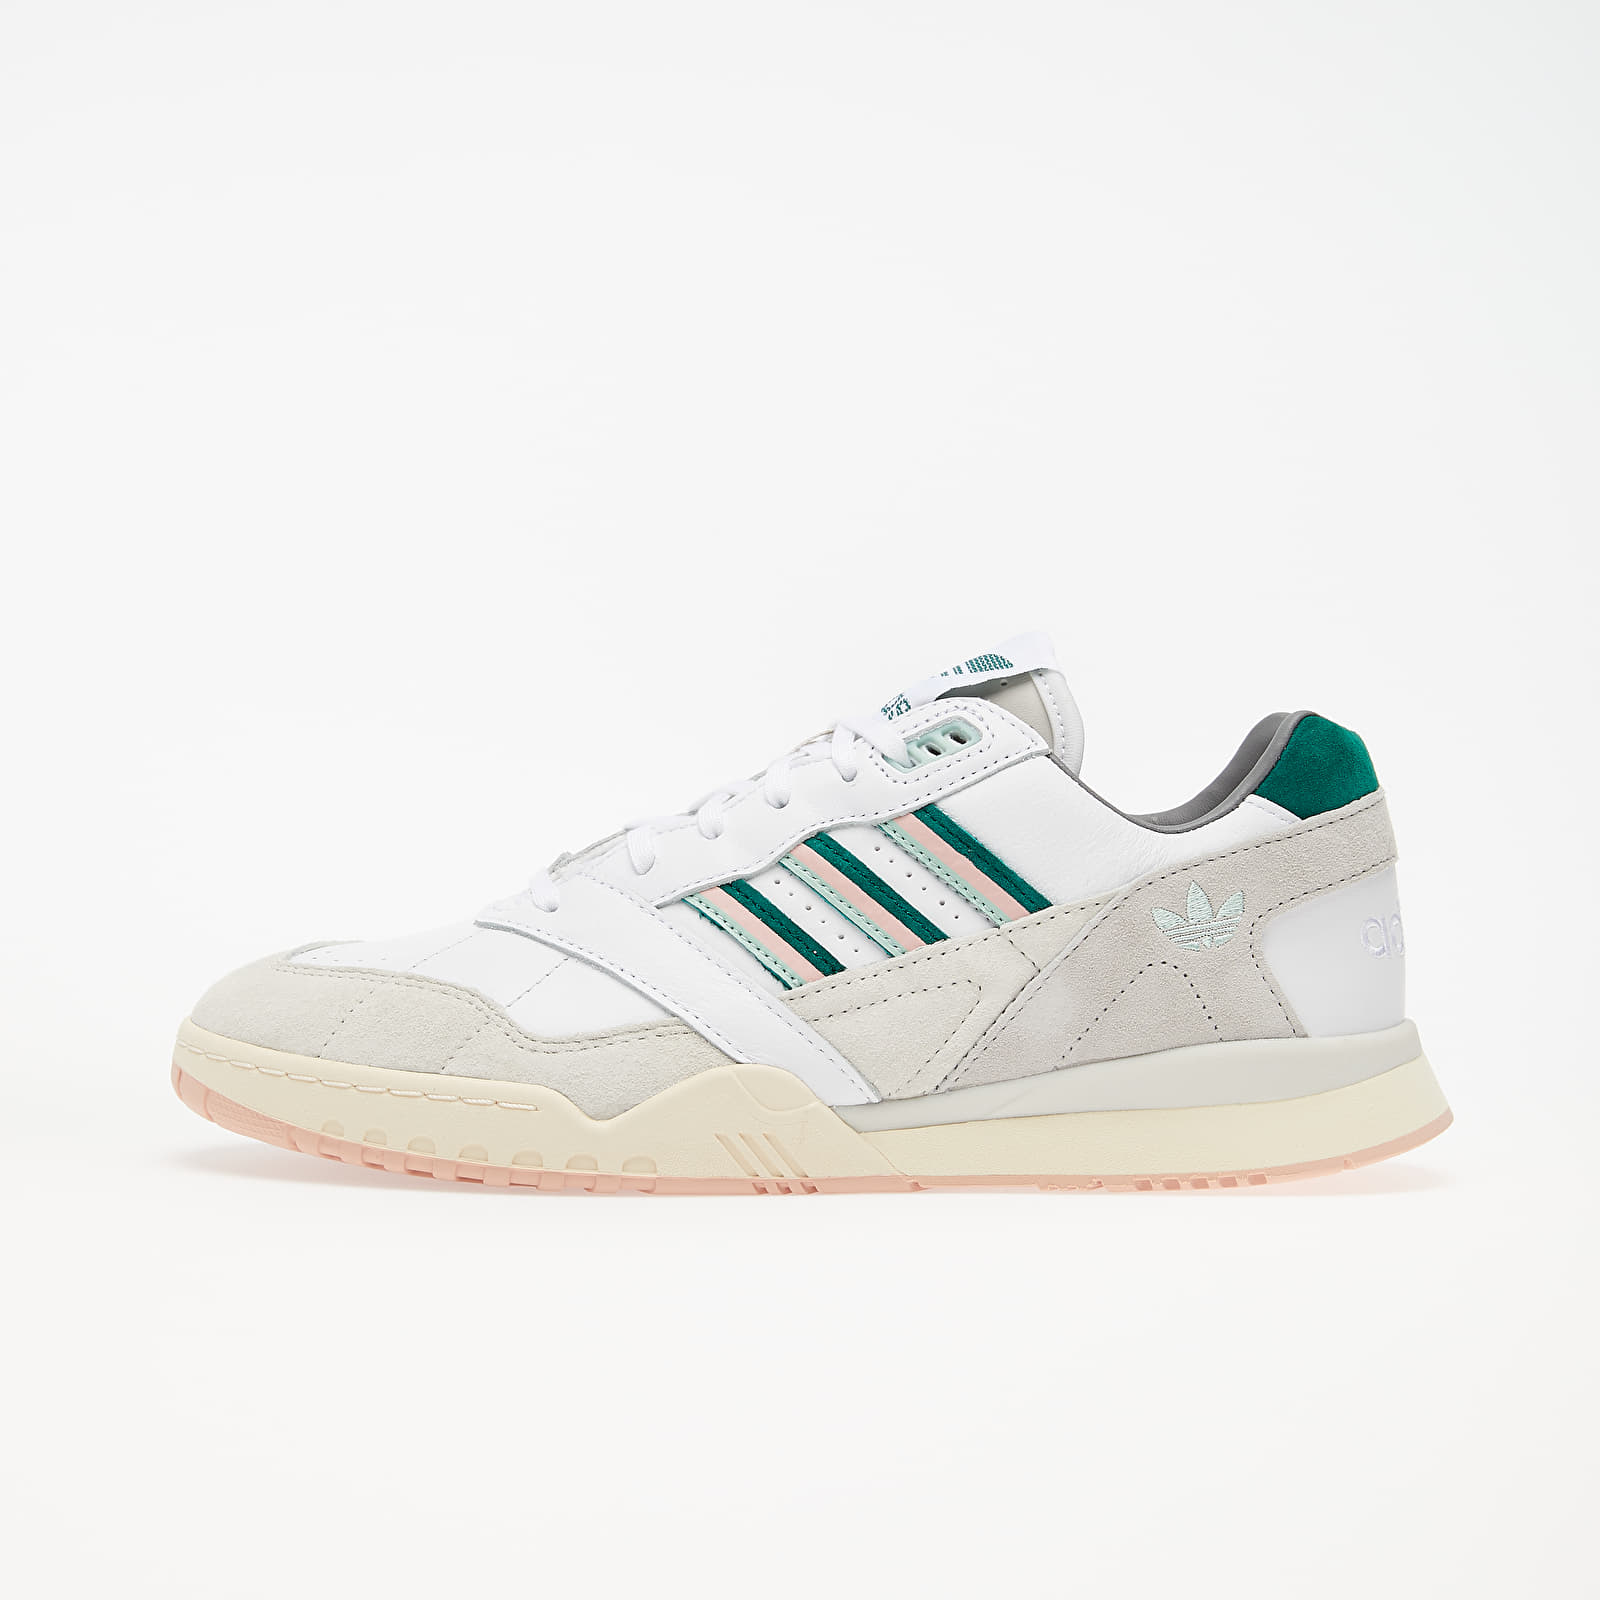 Chaussures et baskets homme adidas A.R. Trainer Ftw White/ Core Green/ Vapor Pink